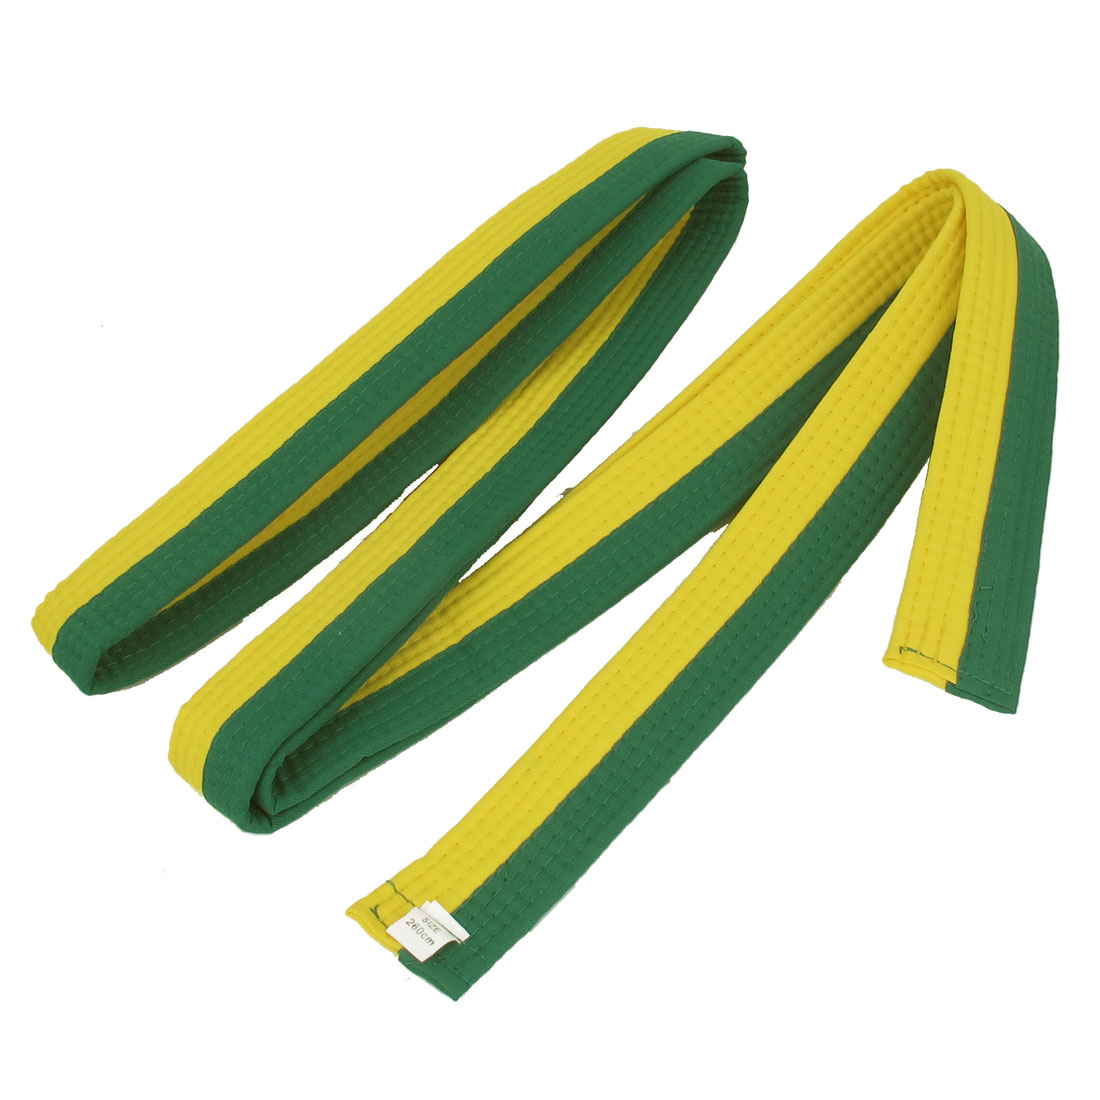 Green Yellow 8.4ft Length Martial Arts Karate Taekwondo Japenese Judo Belt